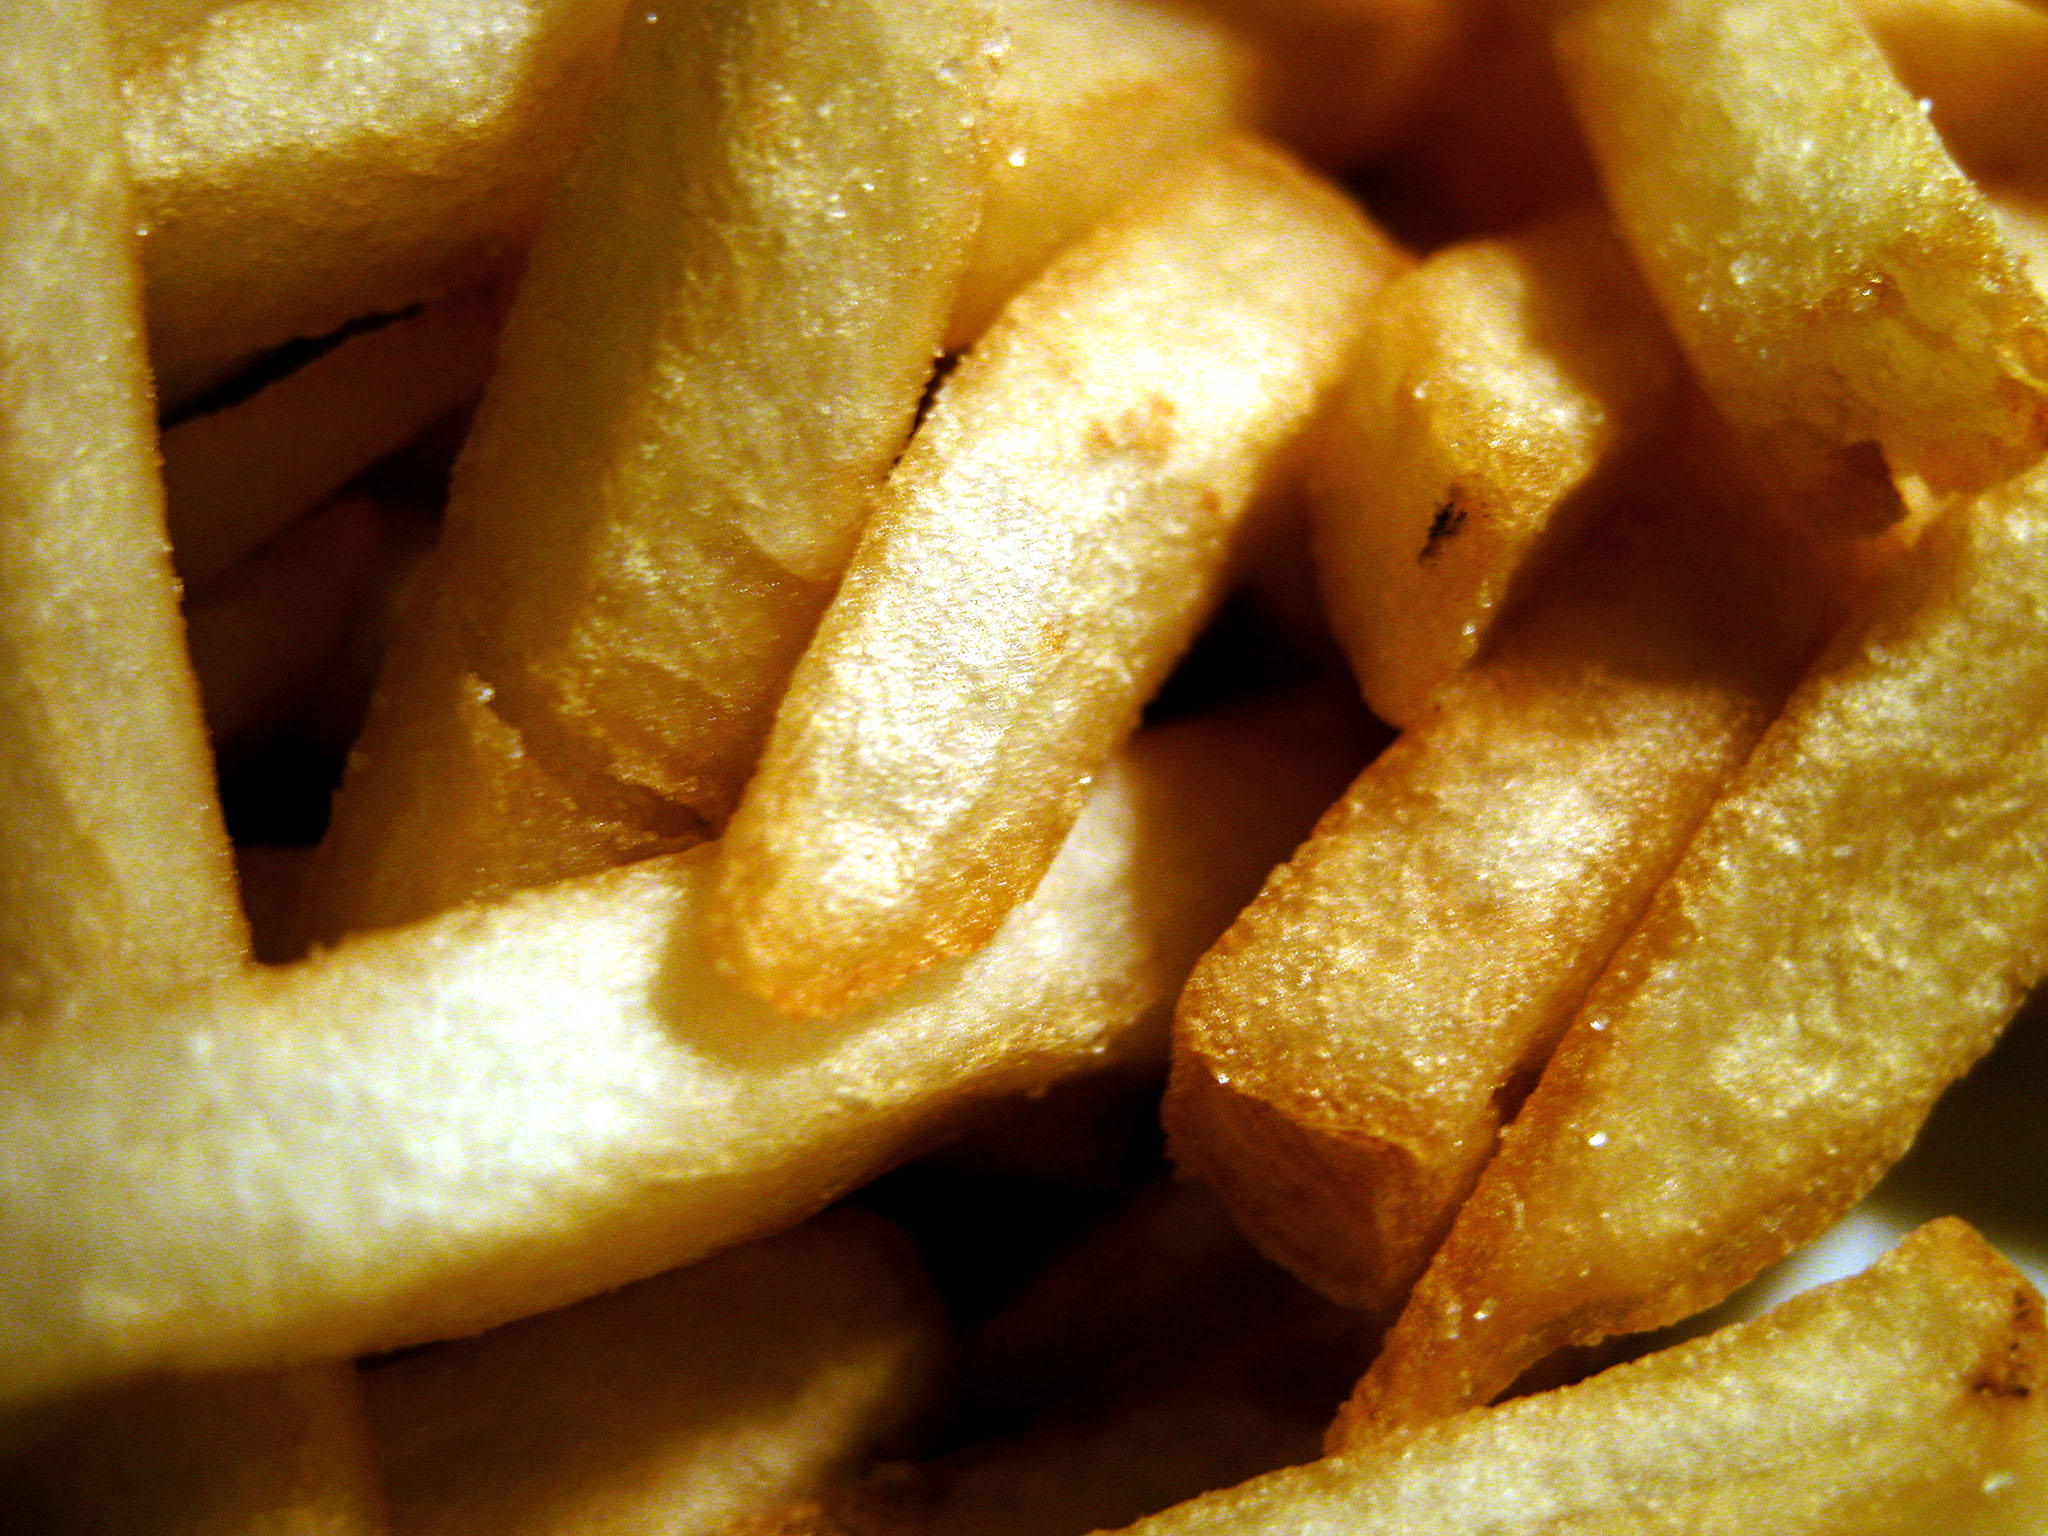 After viewing an ad for french fries, children were more likely to choose the fries over apples even with a parent recommending a